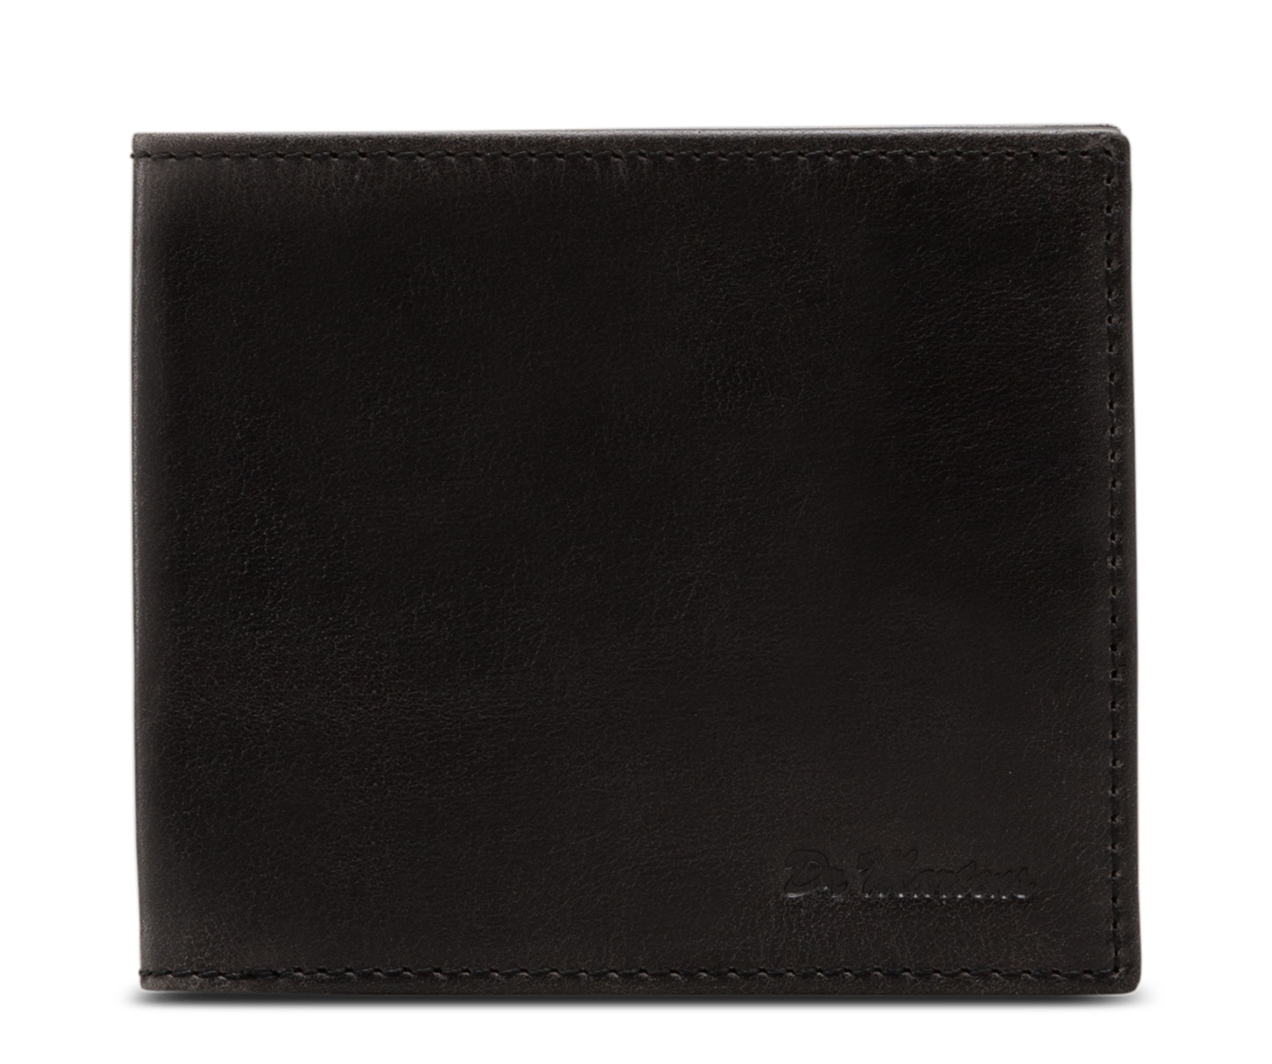 Orleans Leather Fold Wallet by Dr. Martens